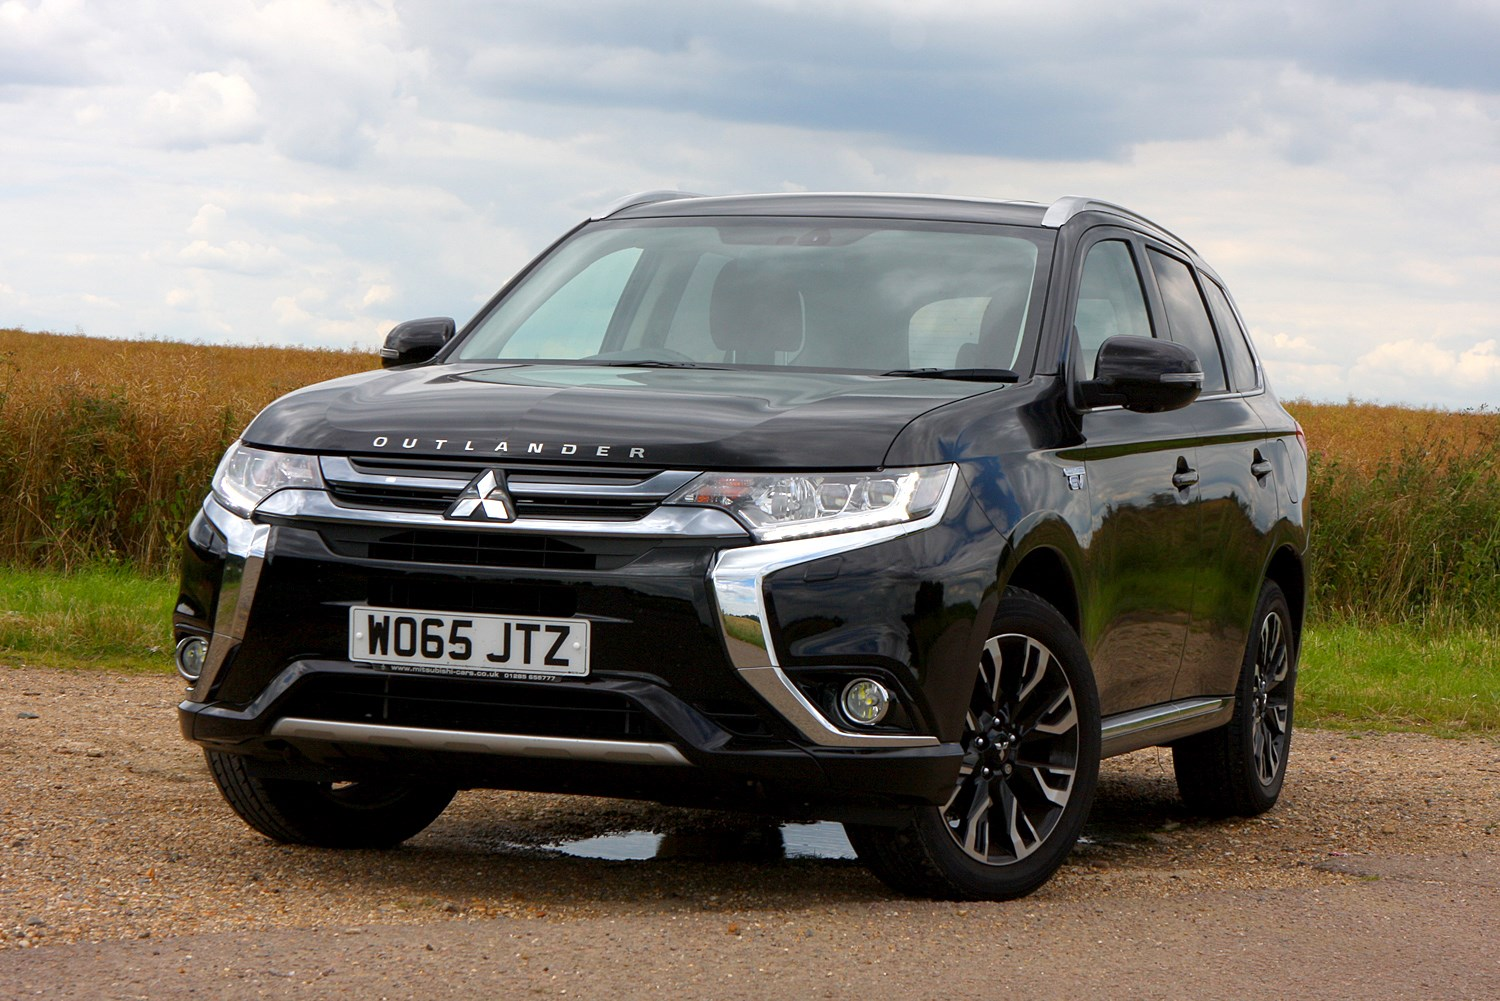 mitsubishi outlander suv review features safety and. Black Bedroom Furniture Sets. Home Design Ideas